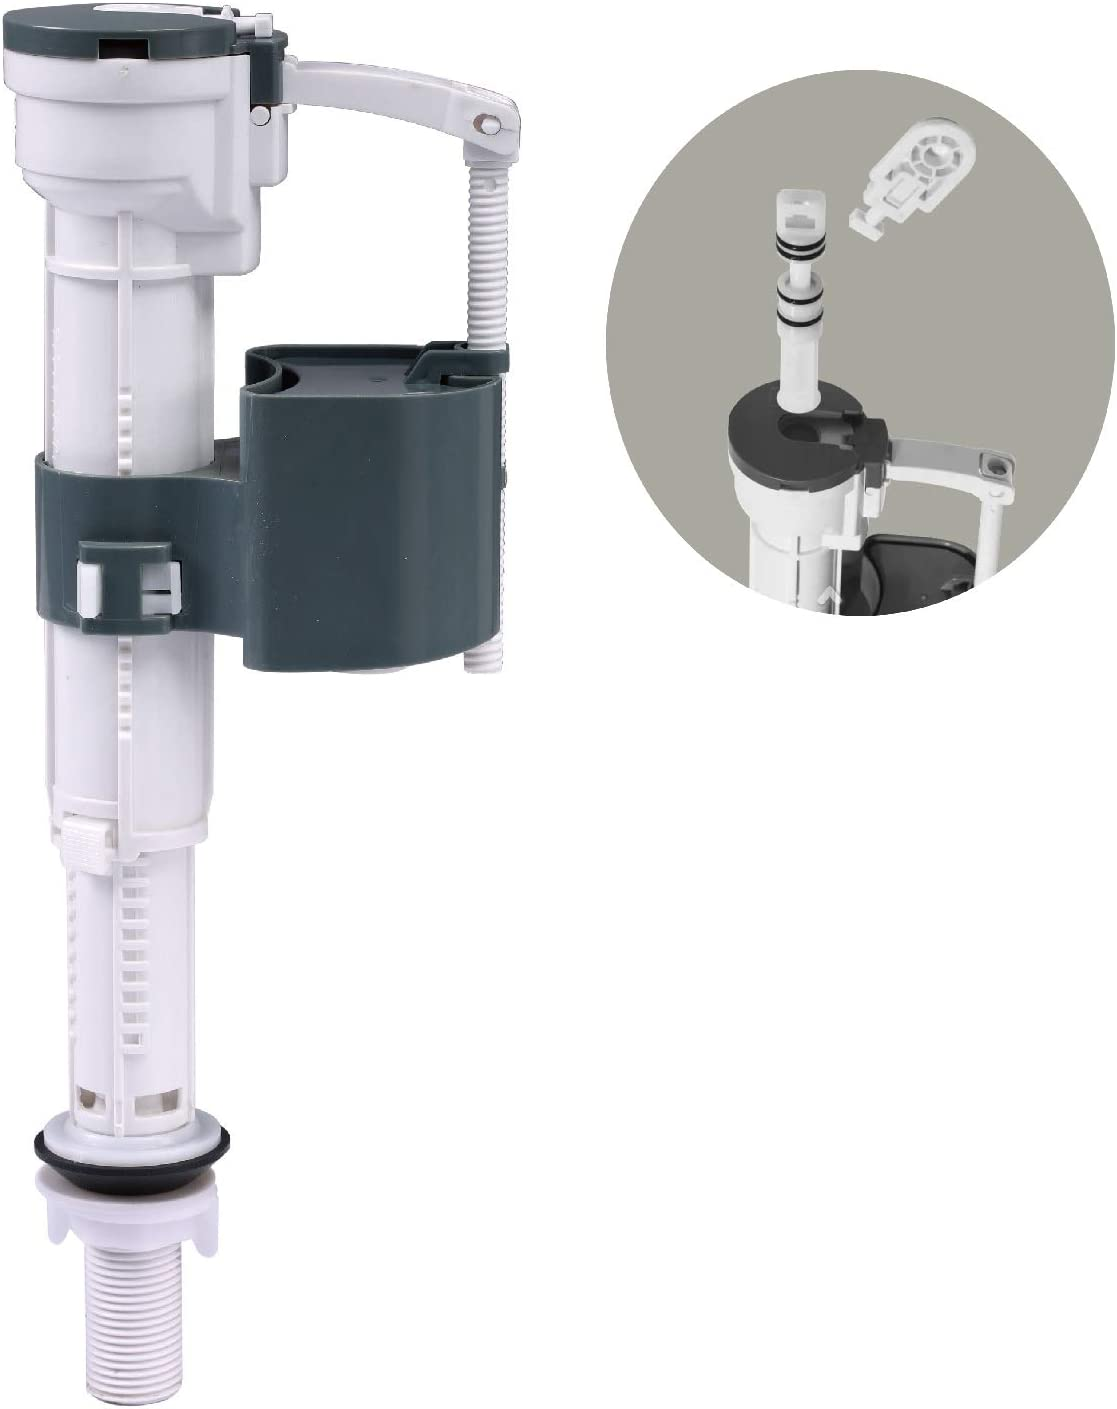 Toilet Fill Valve for Heavy Toilet Tank, Fast Filling & Easy Cleaning Repair Kits, High Performance Replacement Parts, Tall